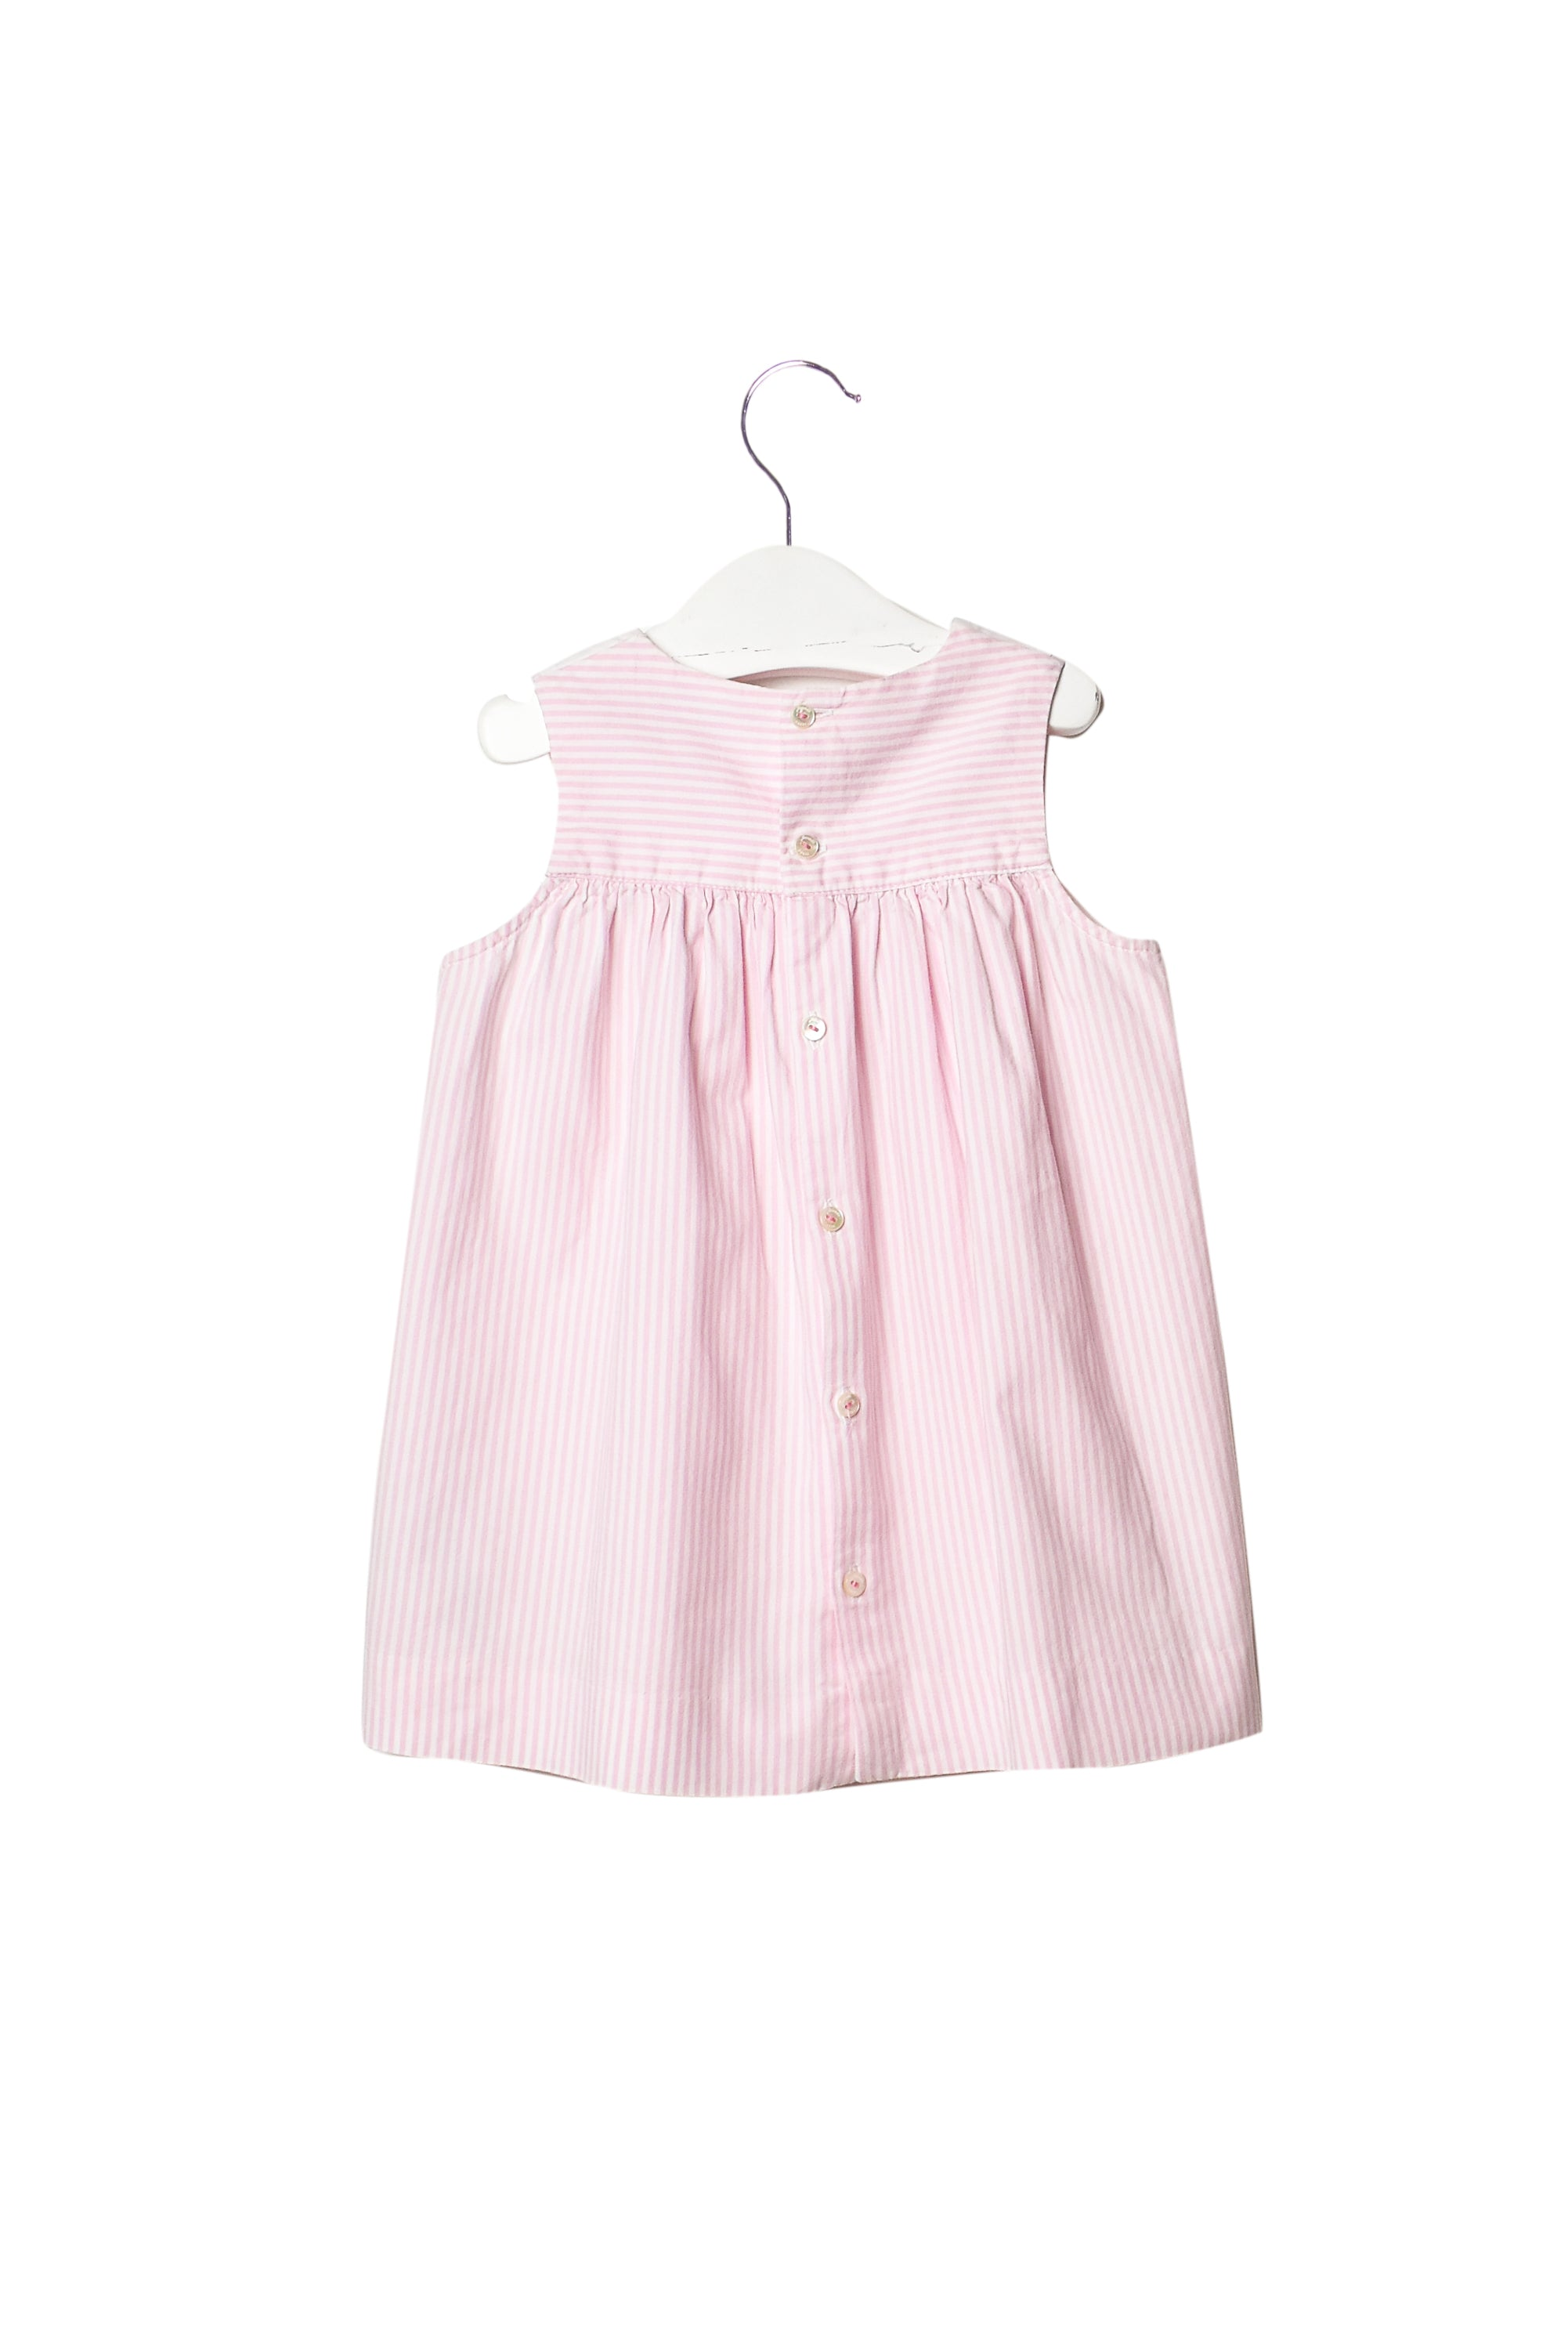 10008102 Jacadi Baby~ Dress and Bloomer 12M at Retykle